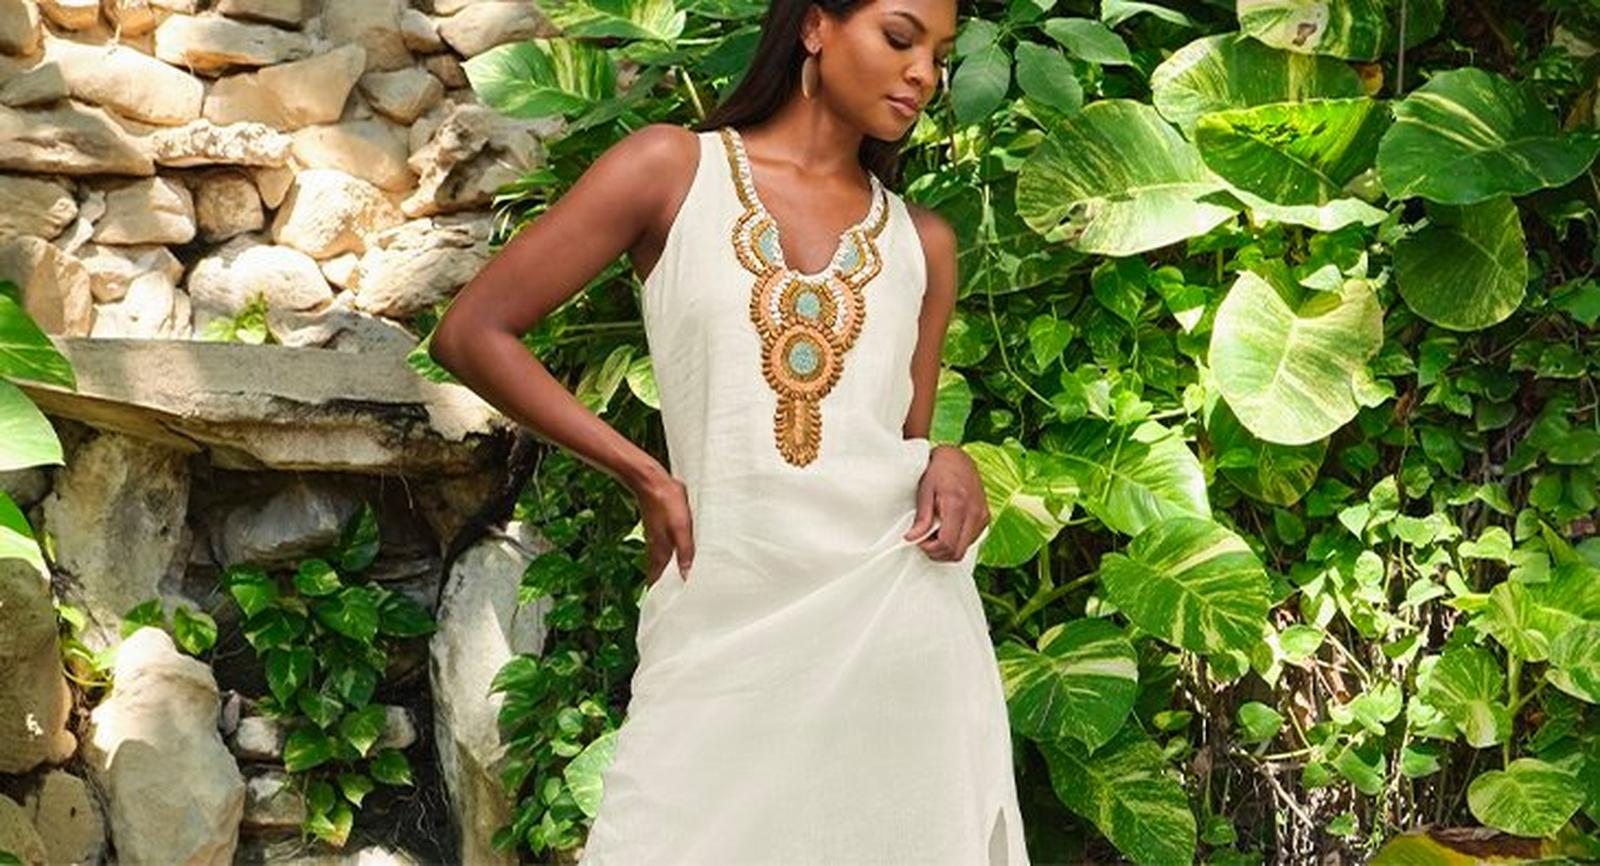 model wearing a white sleeveless linen maxi dress with an embellished neckline.